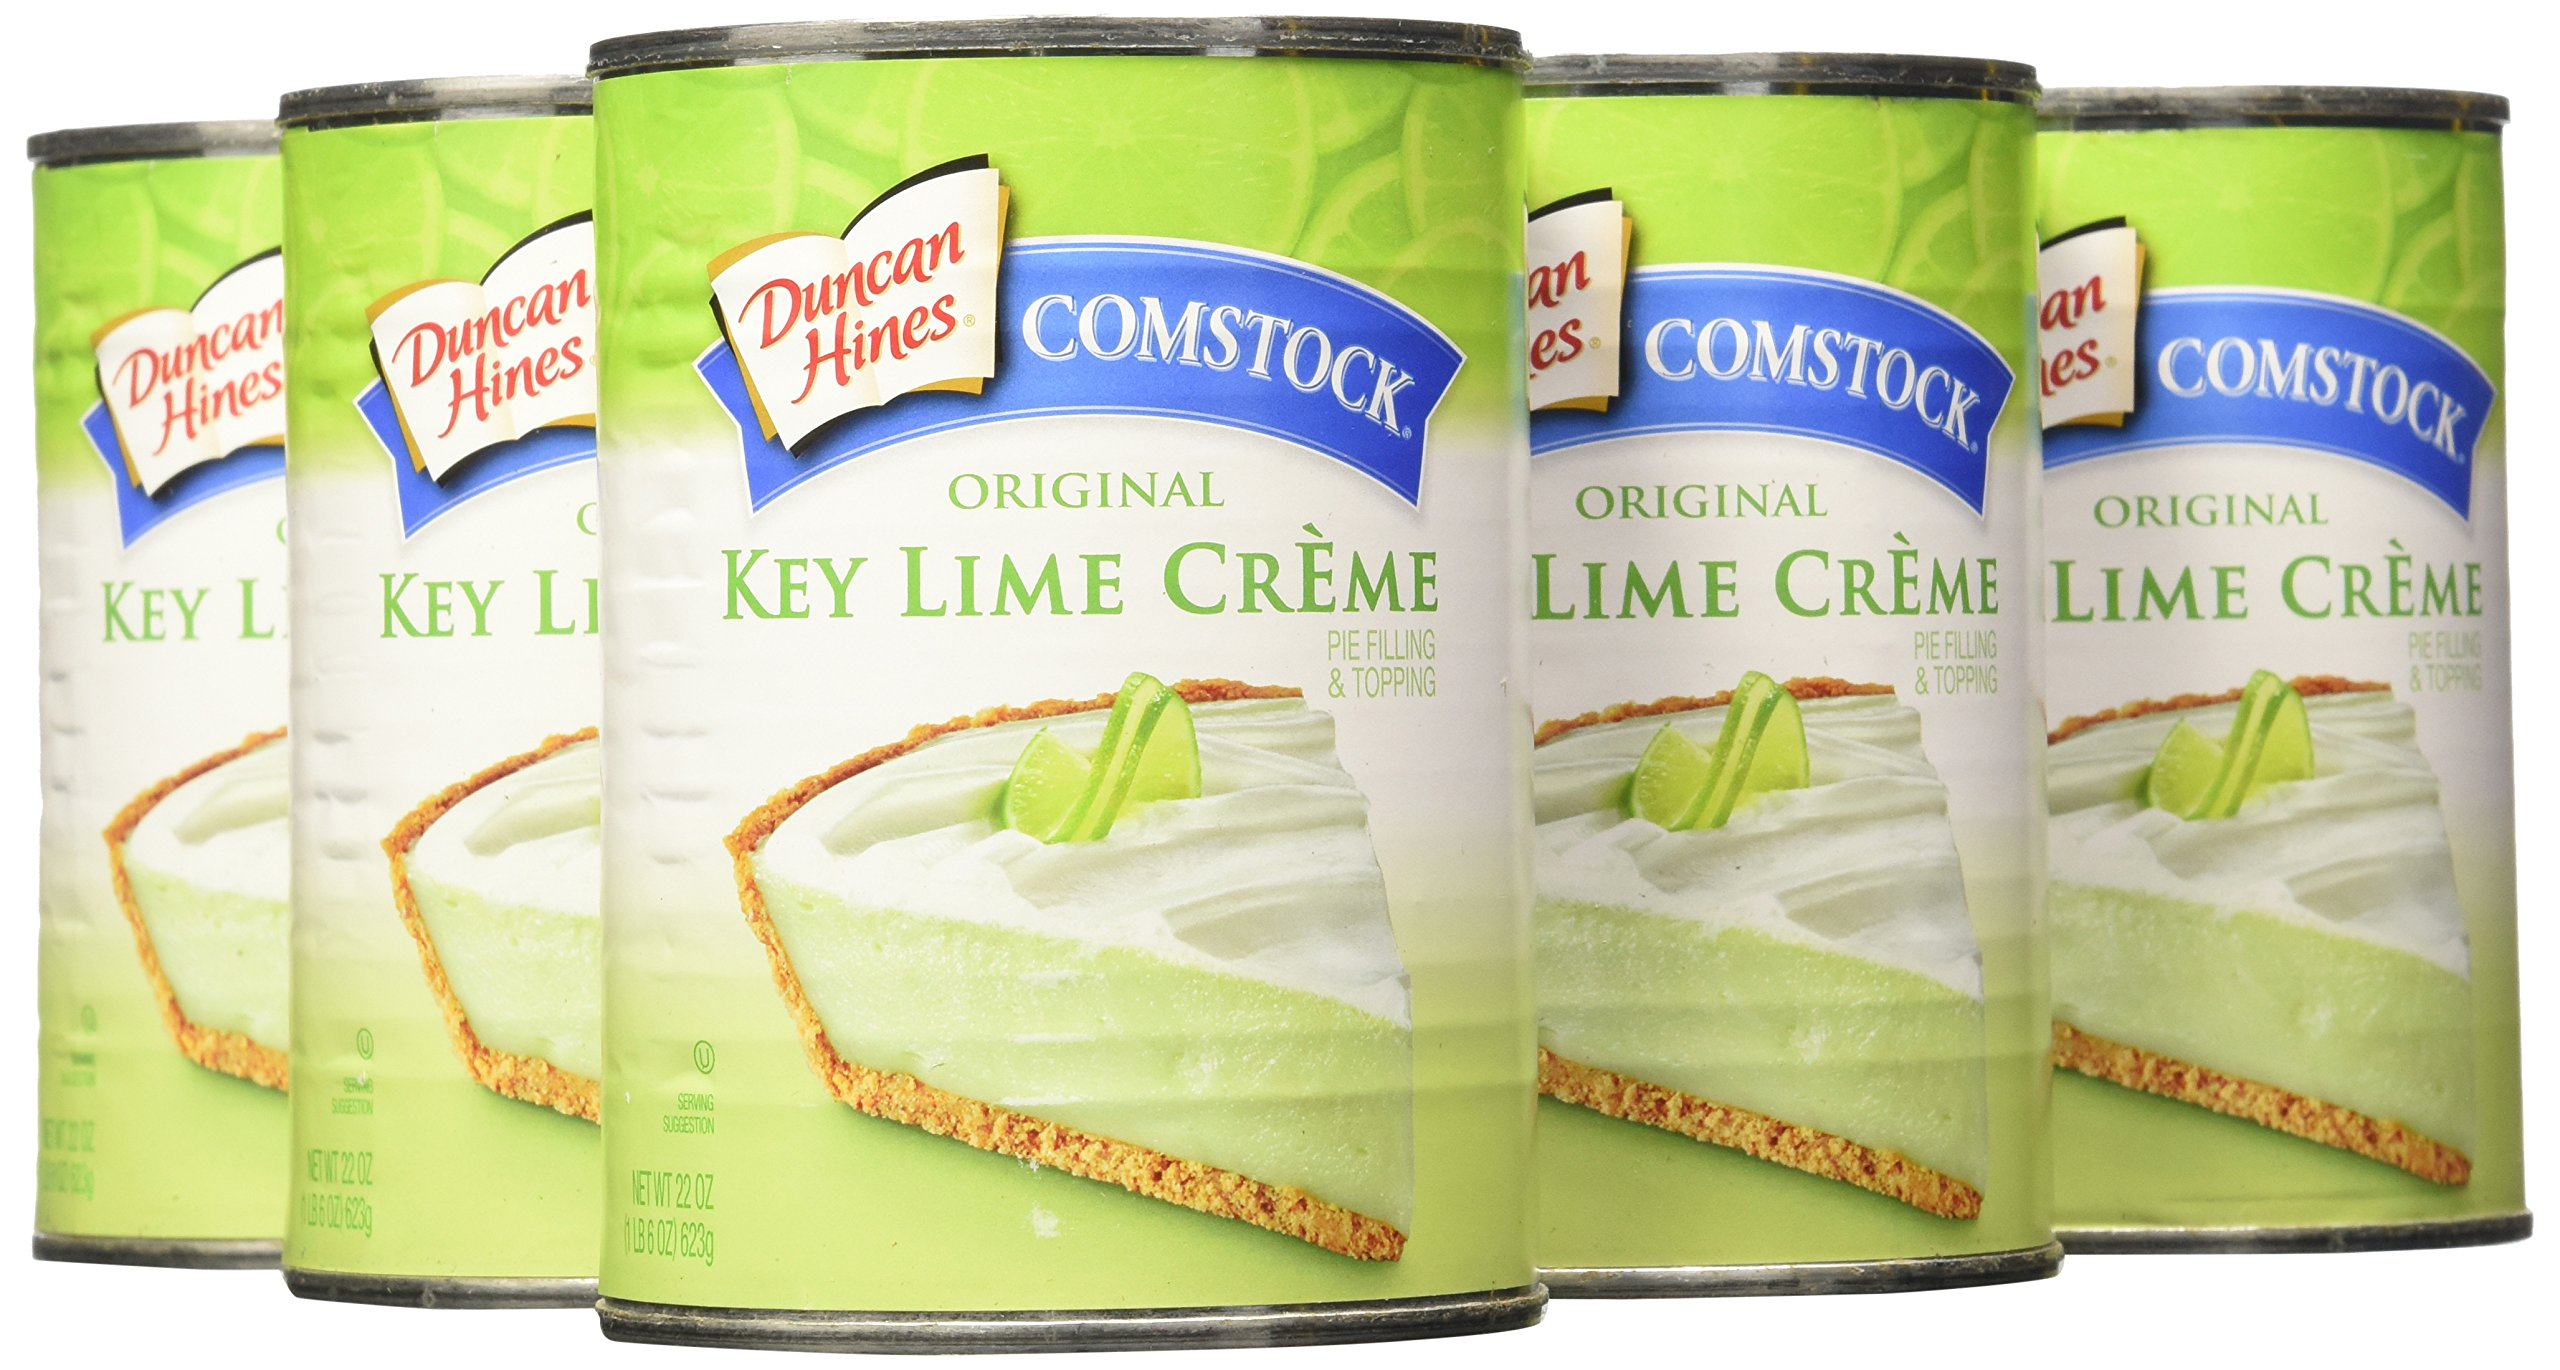 Comstock Original Pie Filling & Topping, Key Lime Creme, 22 Ounce (Pack of 8) by Comstock (Image #1)